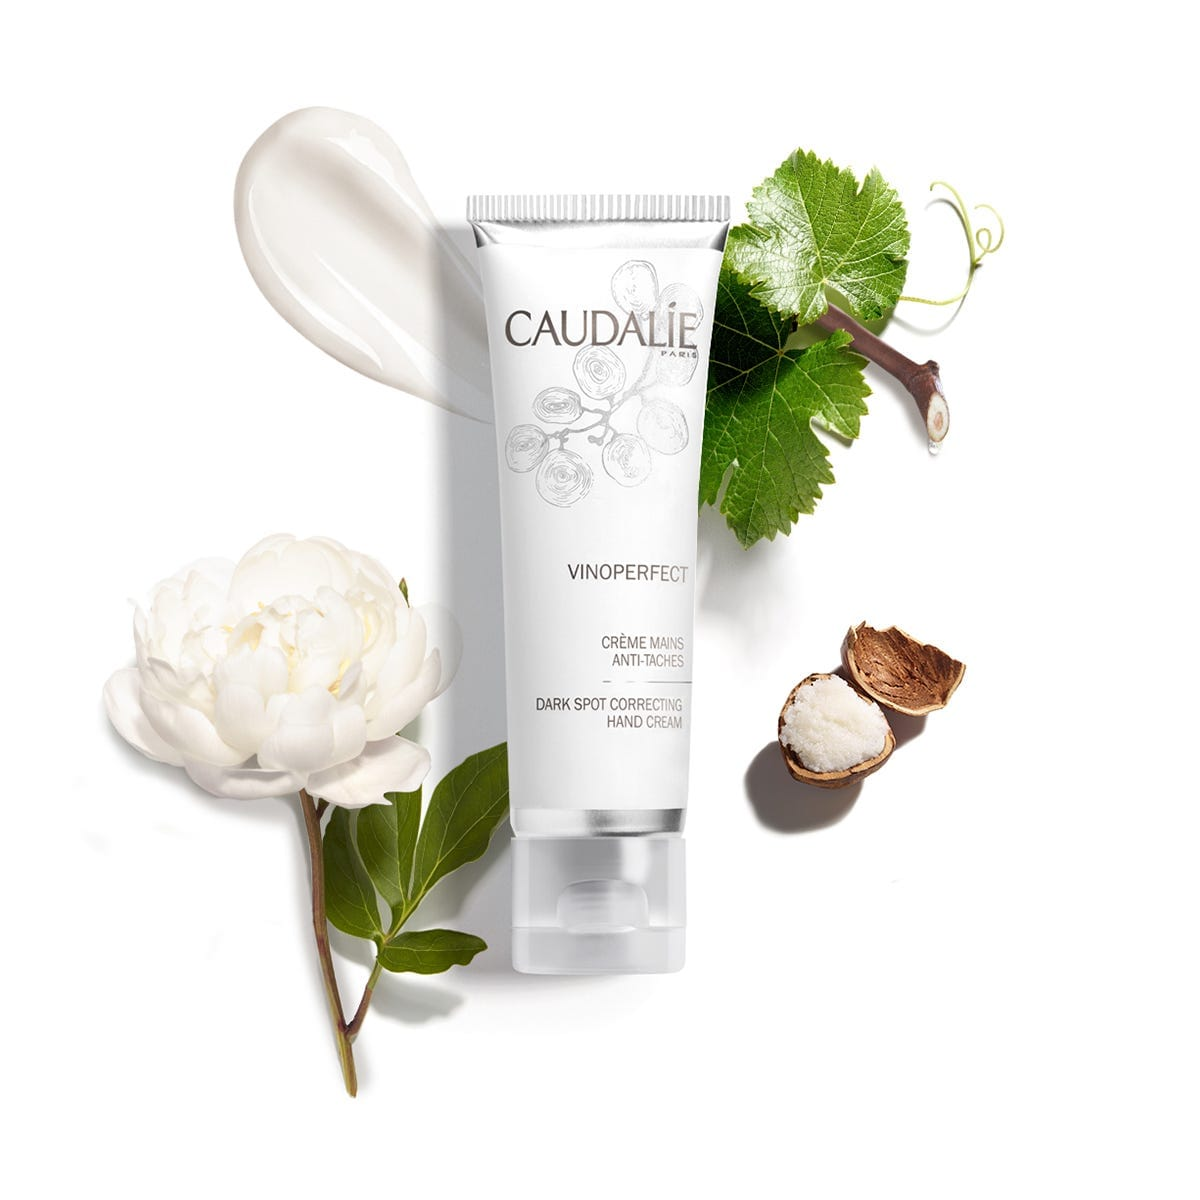 Caudalie vinoperfect antimanchas